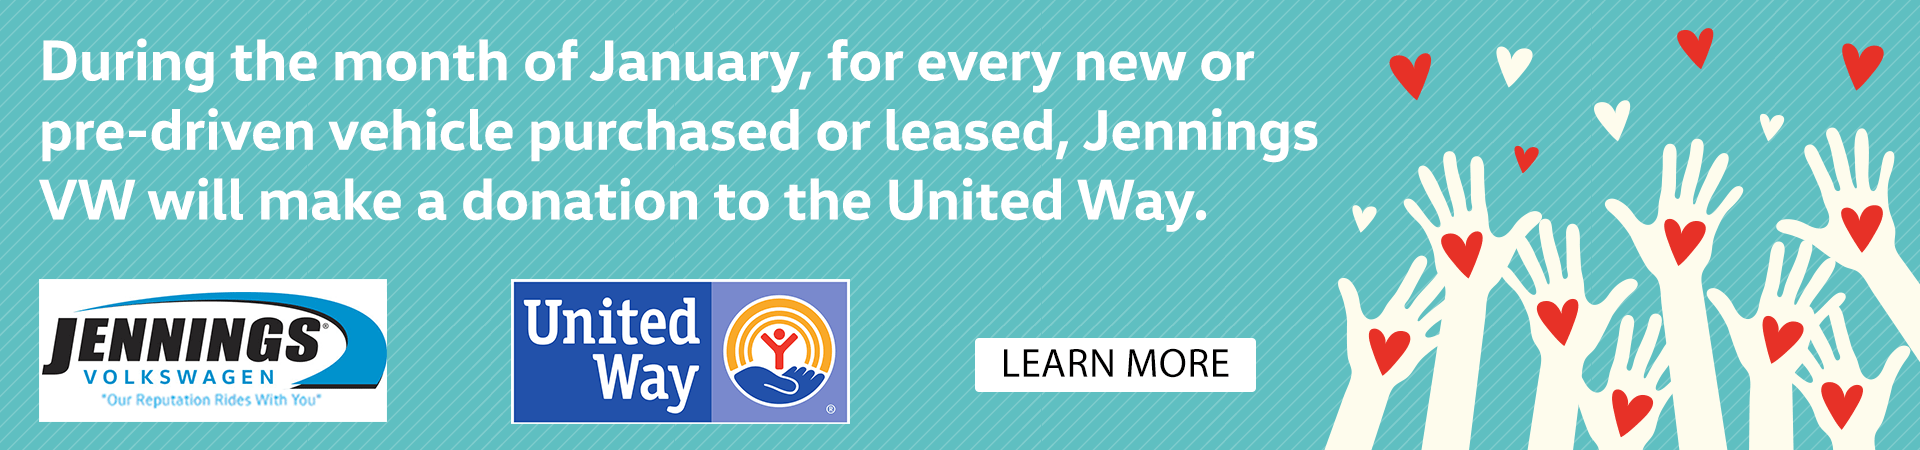 Jennings VW - United Way